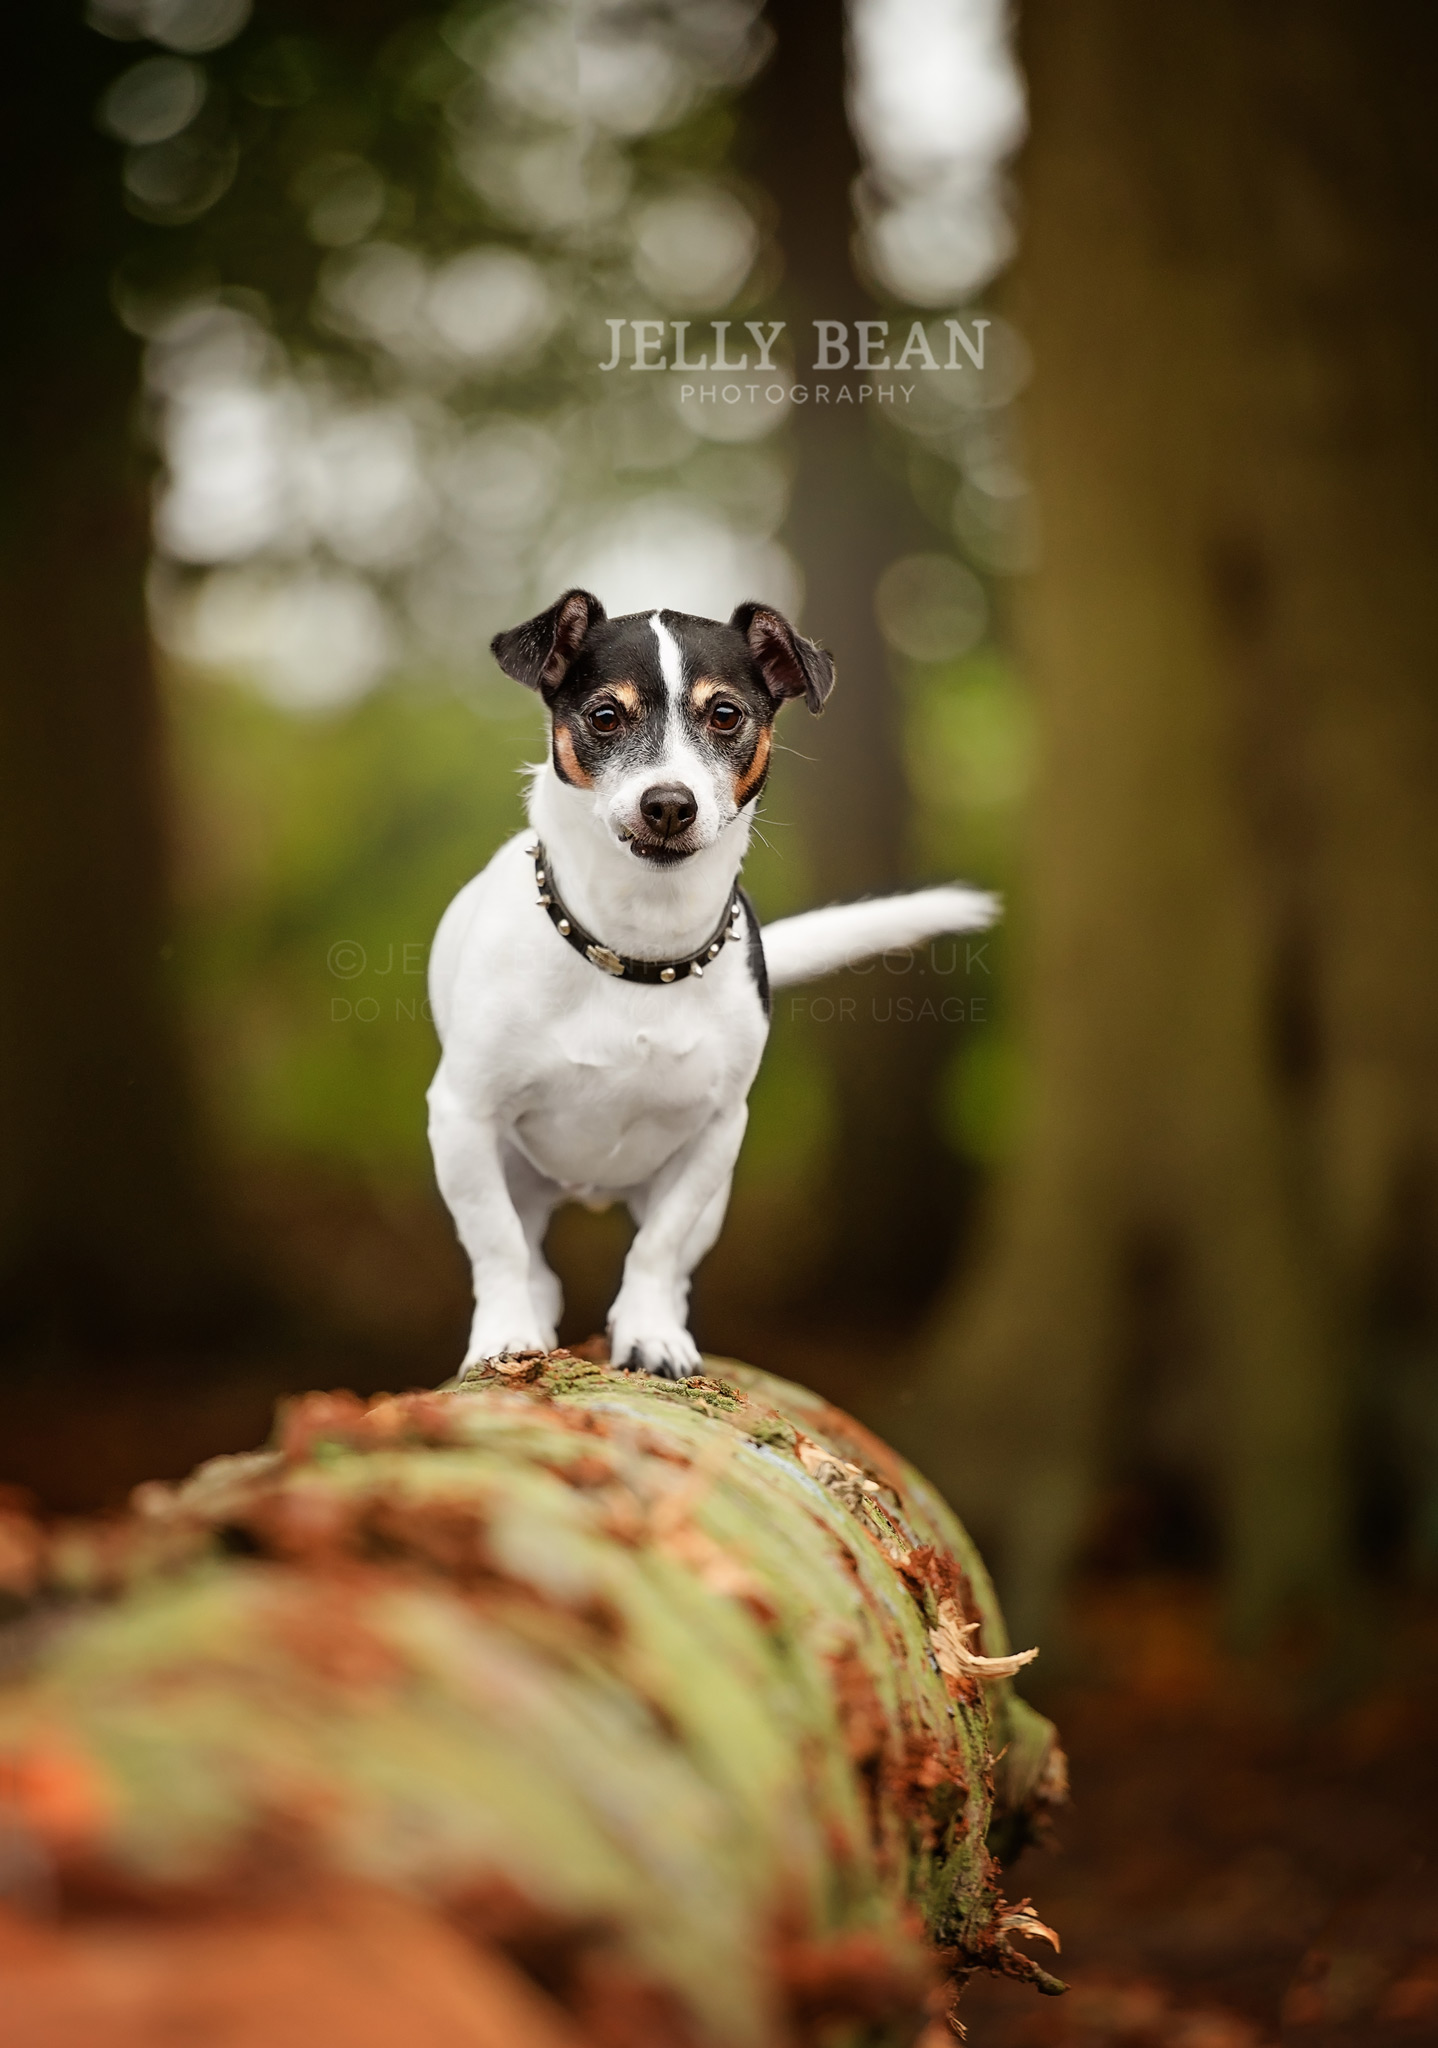 Jack Russell wearing studded collar